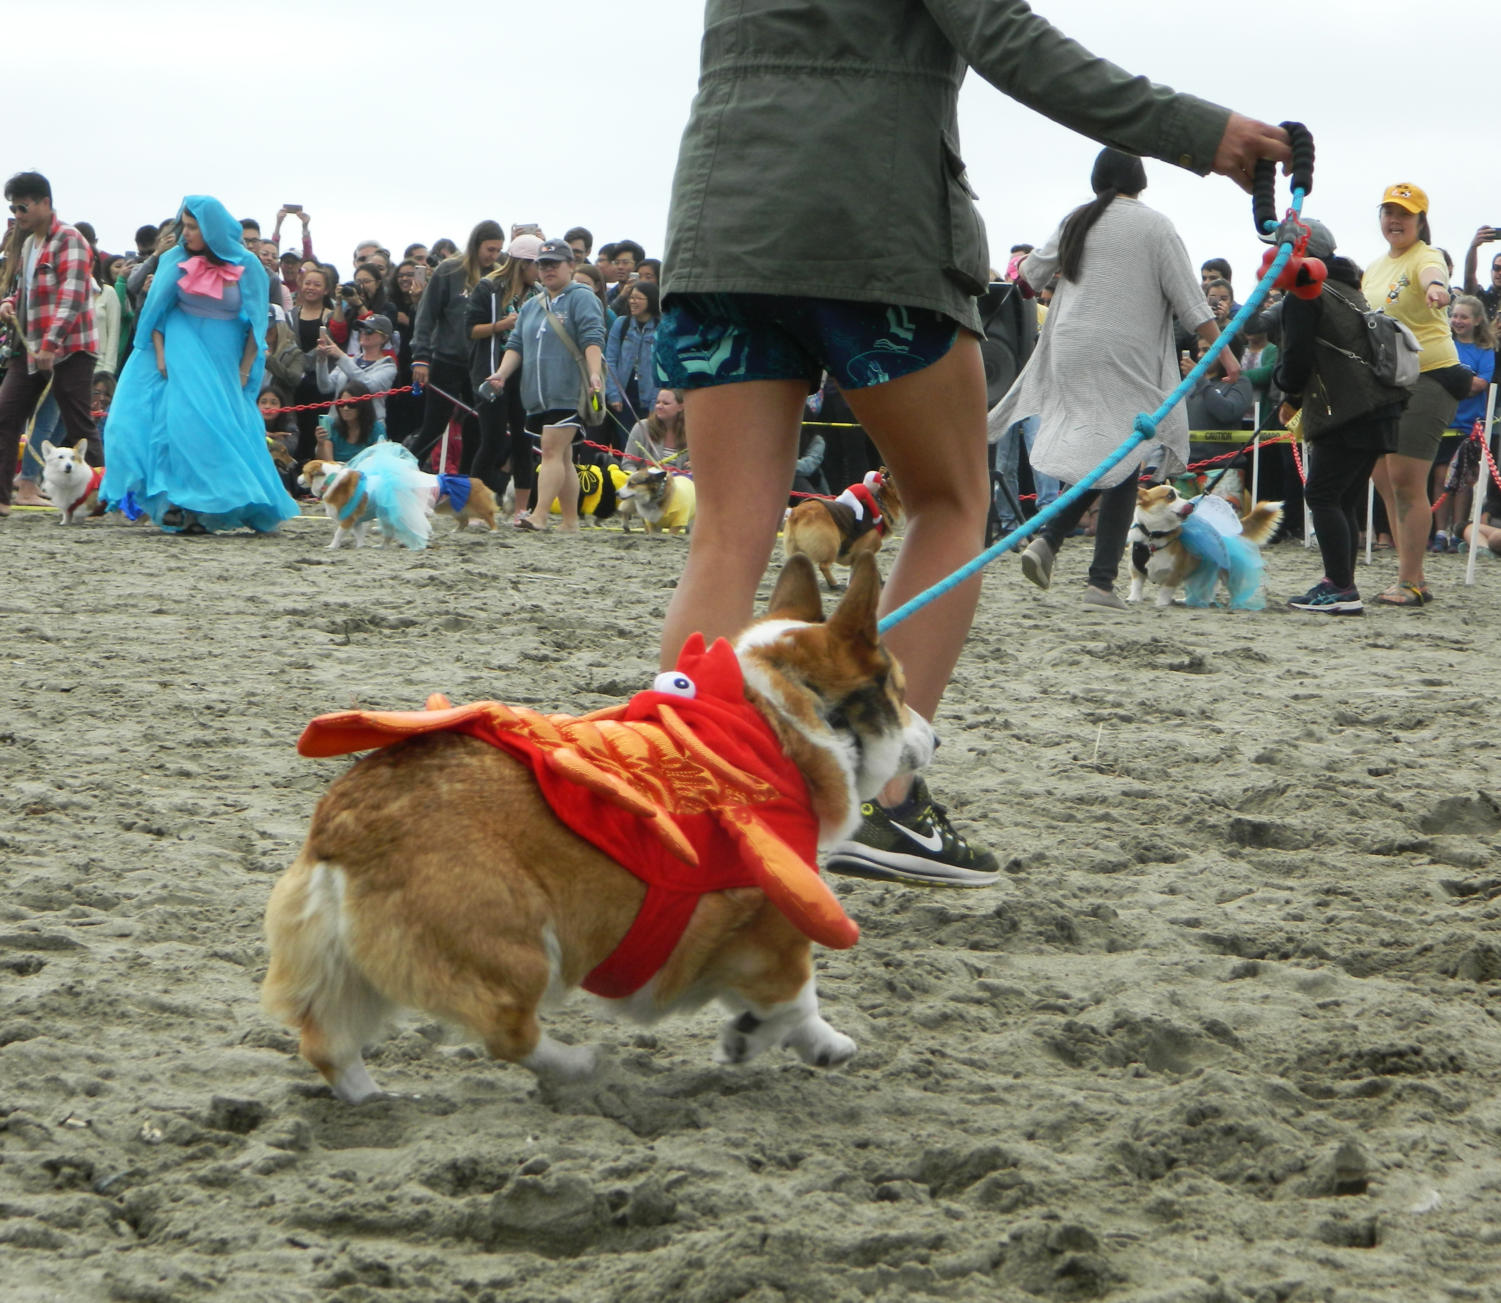 Pixel+the+corgi+parades+down+the+line+of+costumed+corgis+as+a+lobster.+While+there+were+not+many+corgi+crustaceans%2C+for+Pixel%27s+owner+Gracy+McGuigan%2C+it+was+the+perfect+choice.+%22It+was+a+costume+he+%5BPixel%5D+got+two+years+ago+and+because+we%27re+by+the+ocean%2C+we+thought+it+was+fitting%2C%22+McGuigan+said.